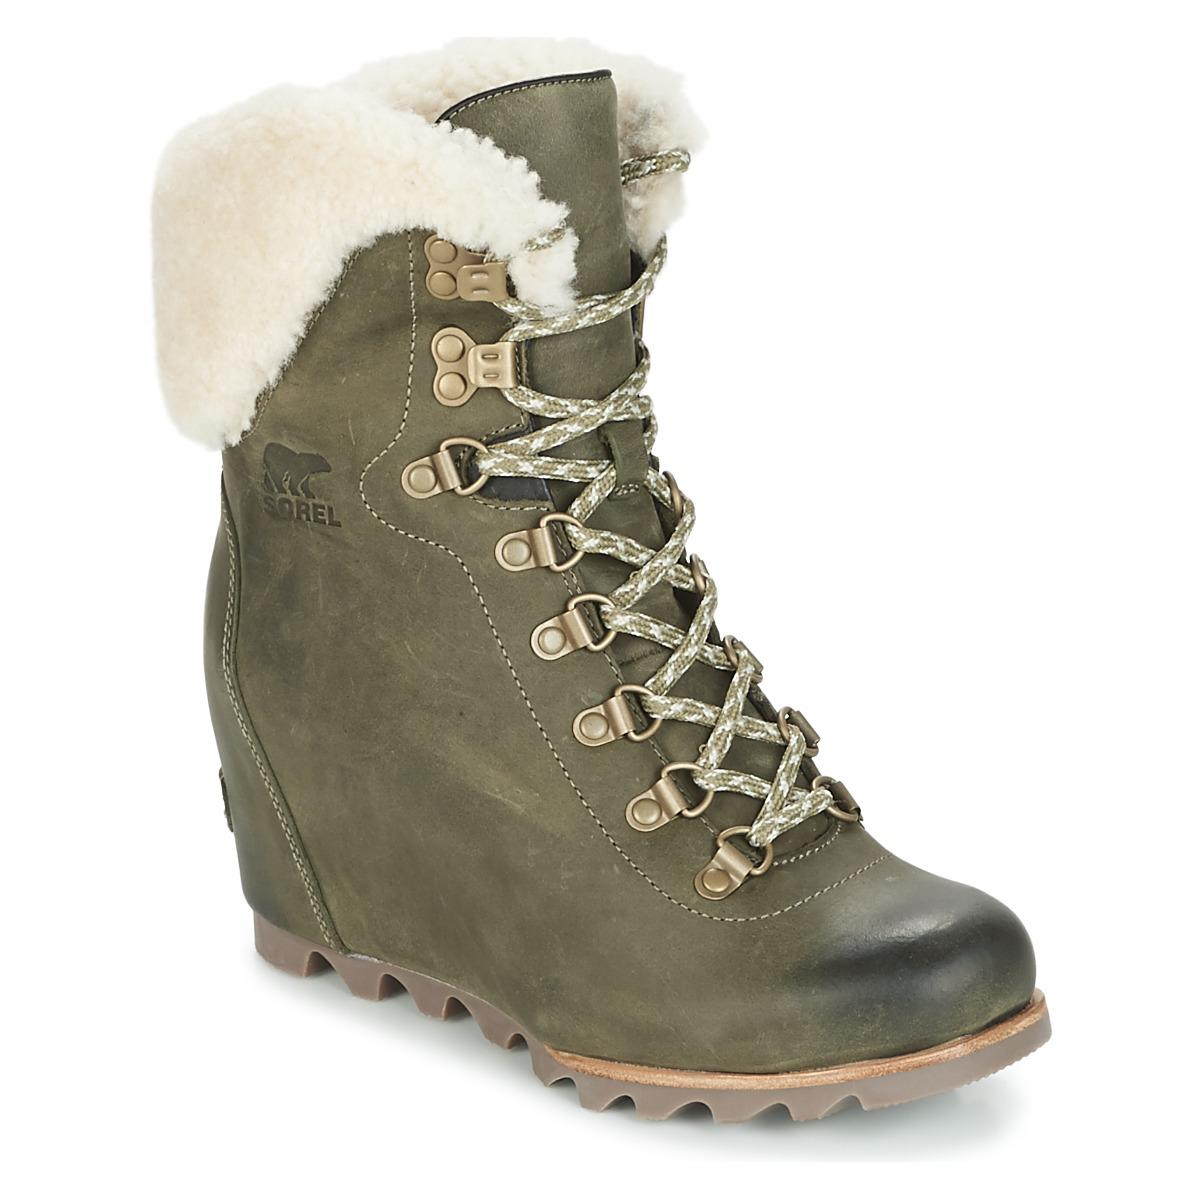 fed49df35a7 Sorel Conquest Wedge Shearling Women s Snow Boots In Green in Green ...